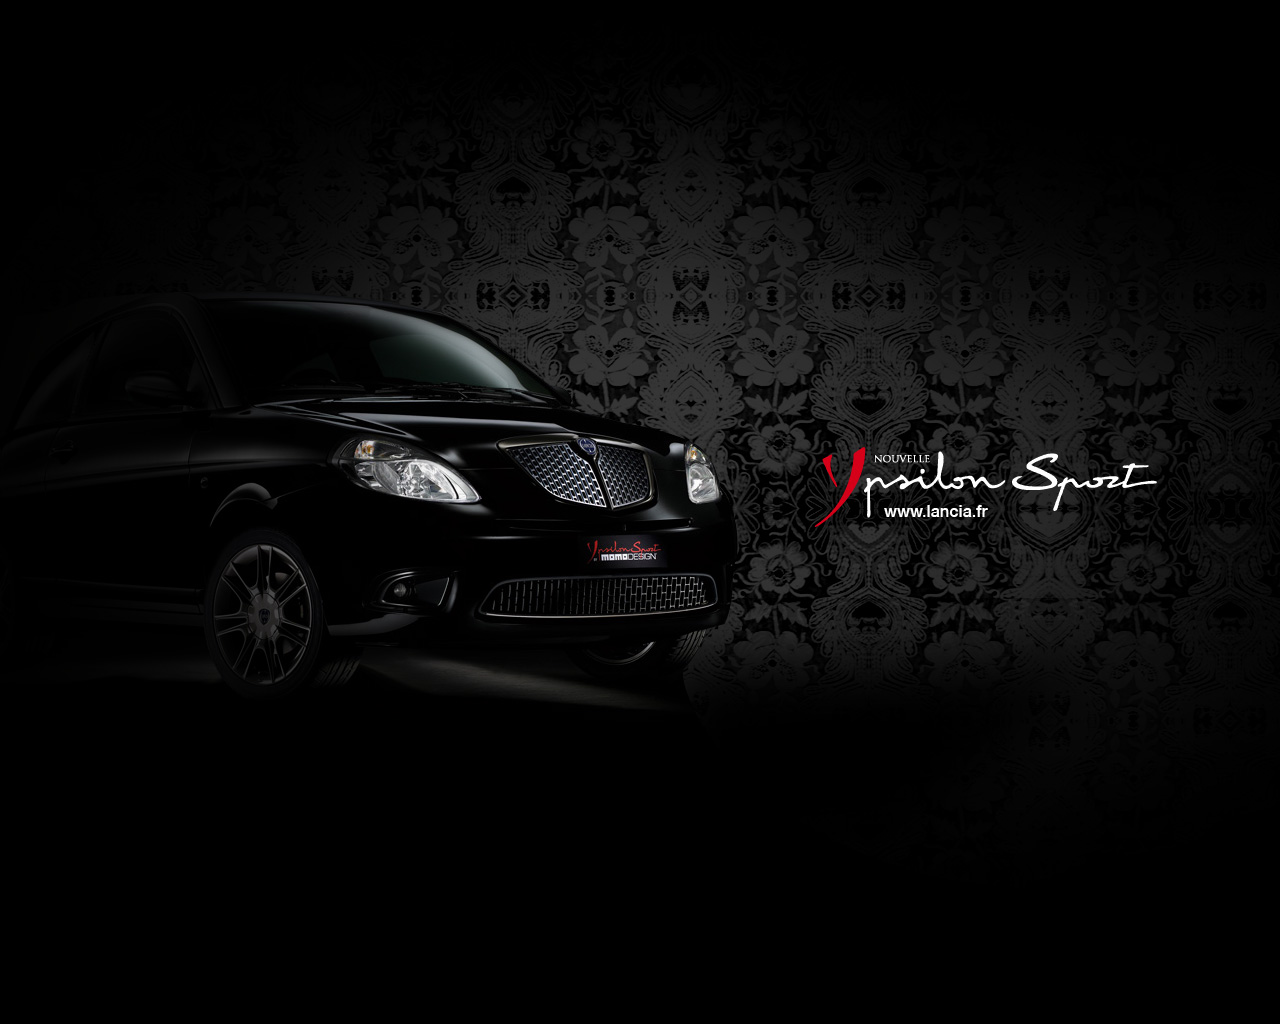 lancia-ypsilon-wallpaper1280x1024_3